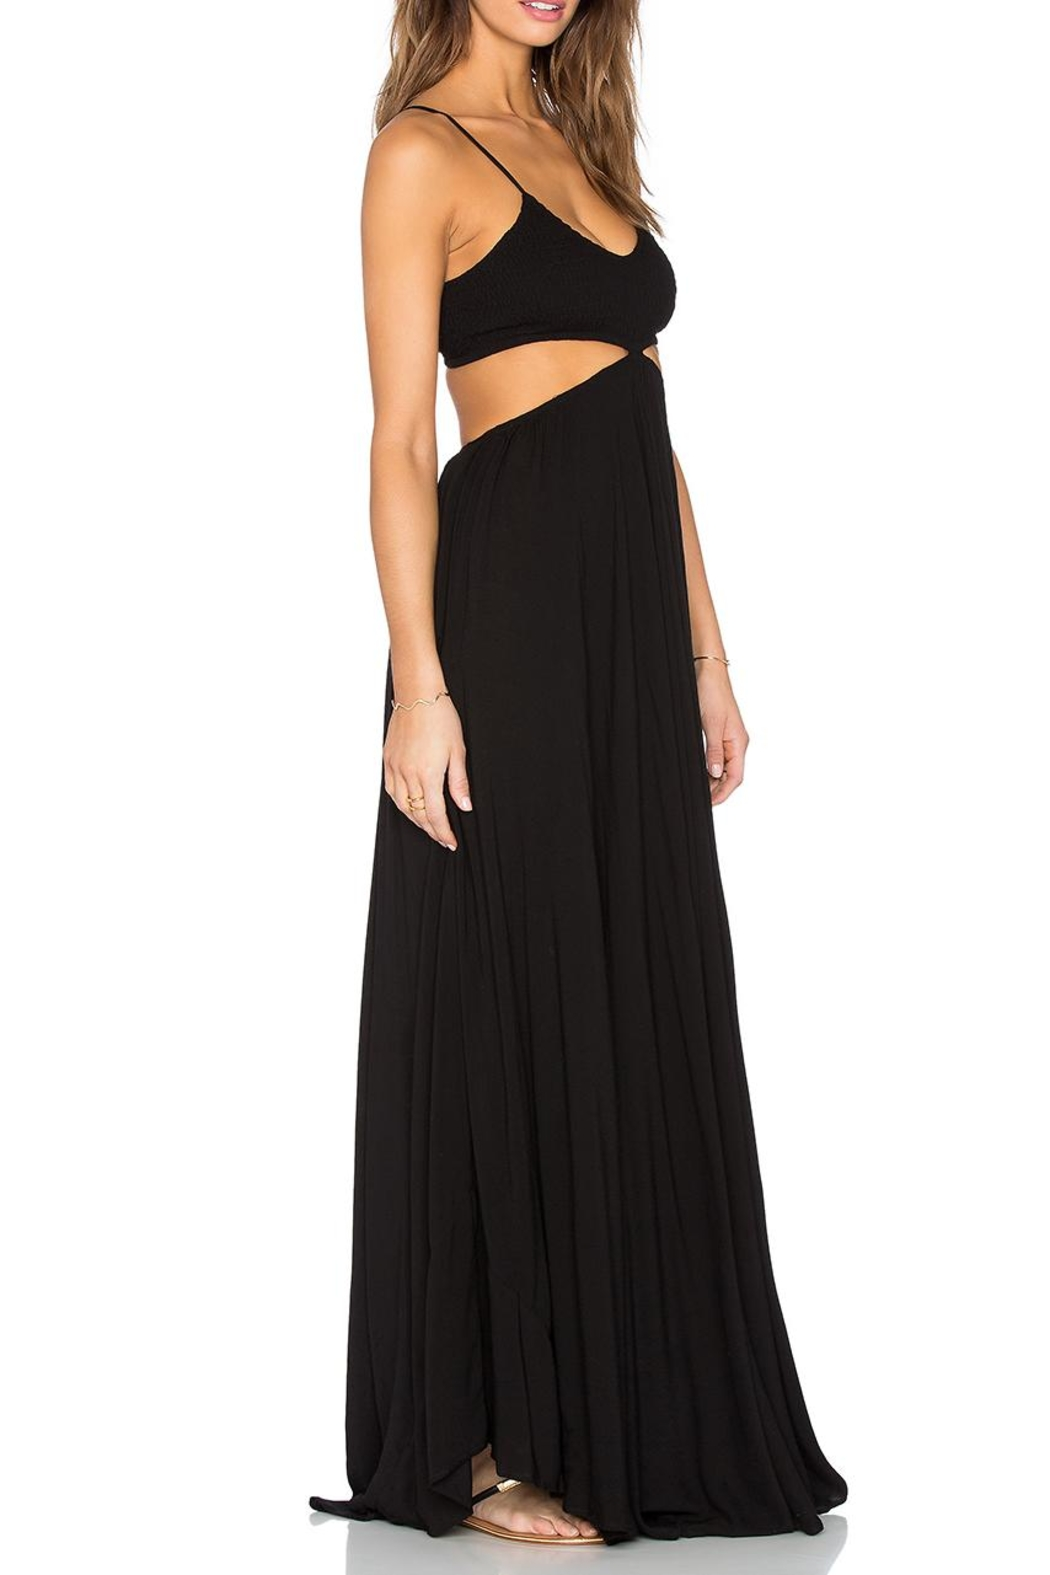 Indah Innocence Cutout Dress - Front Cropped Image